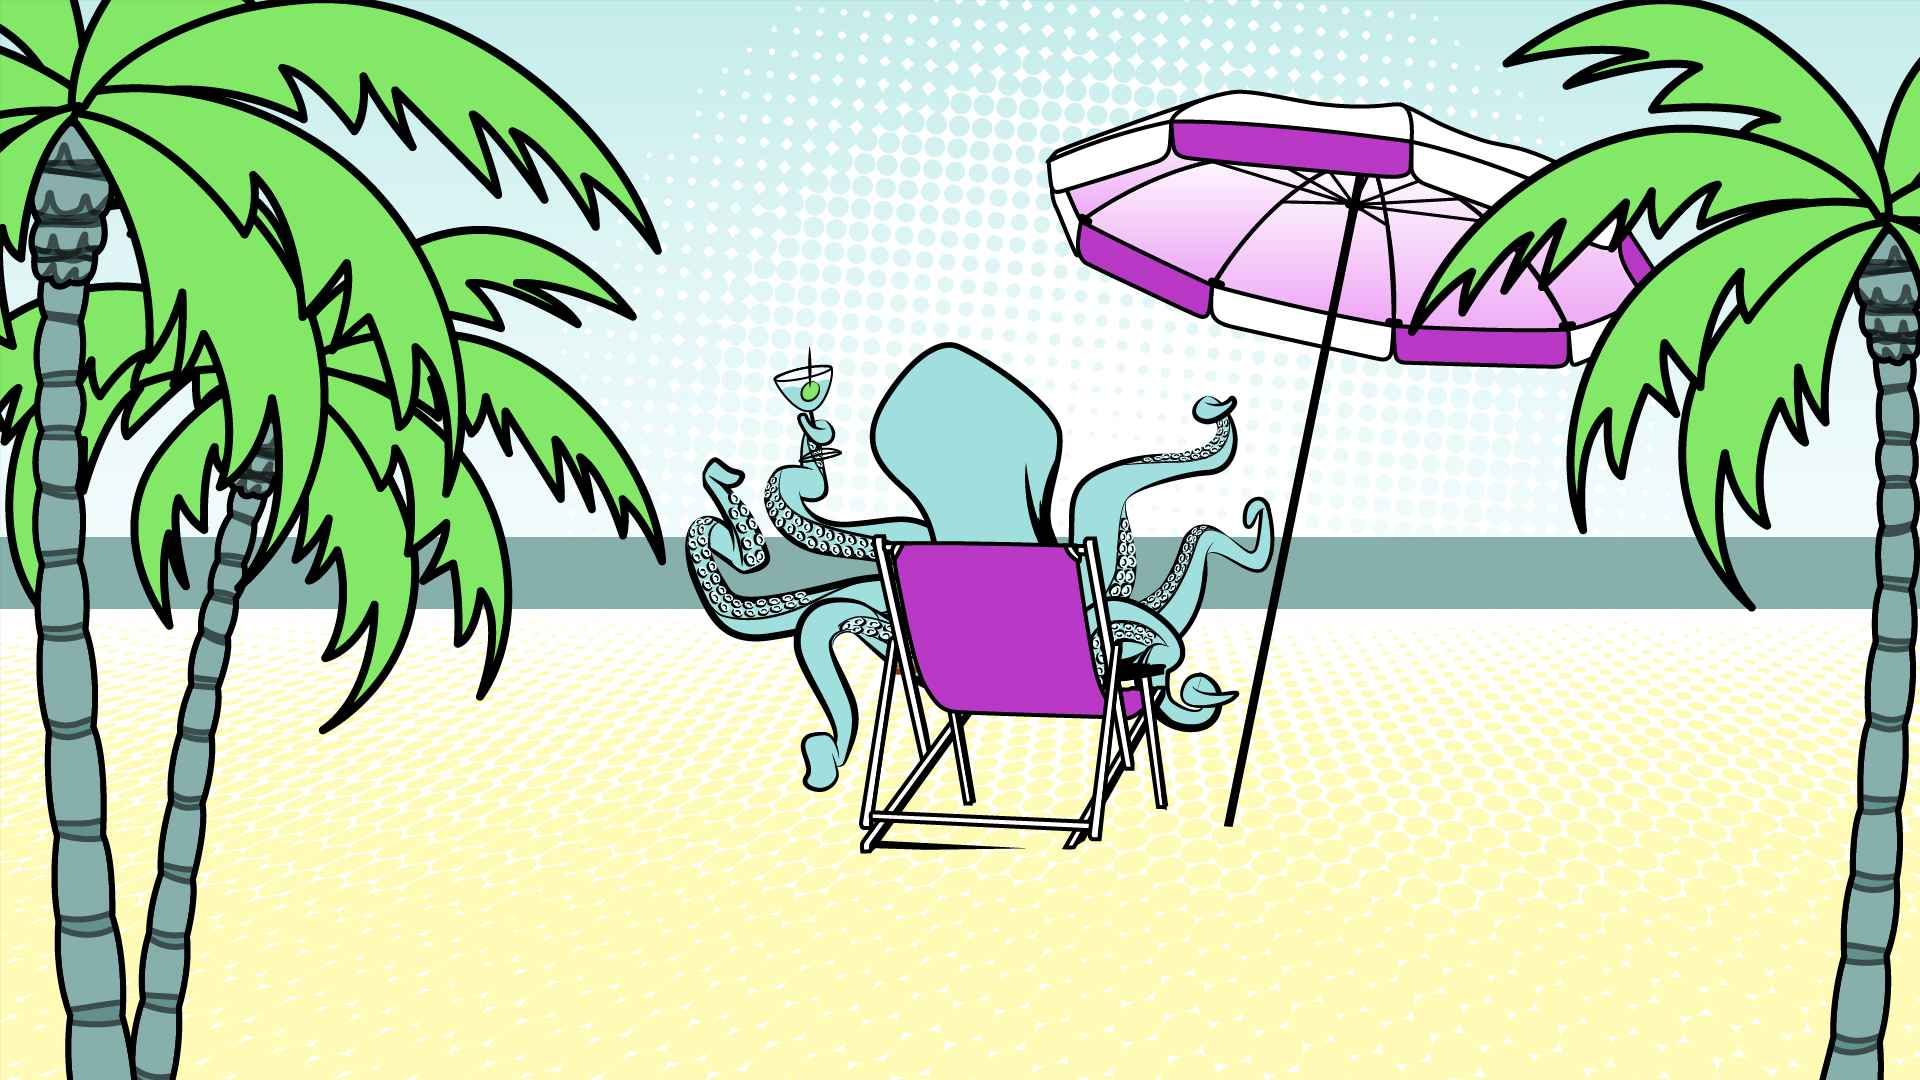 Octopus on vacation in Animated Presentation Video